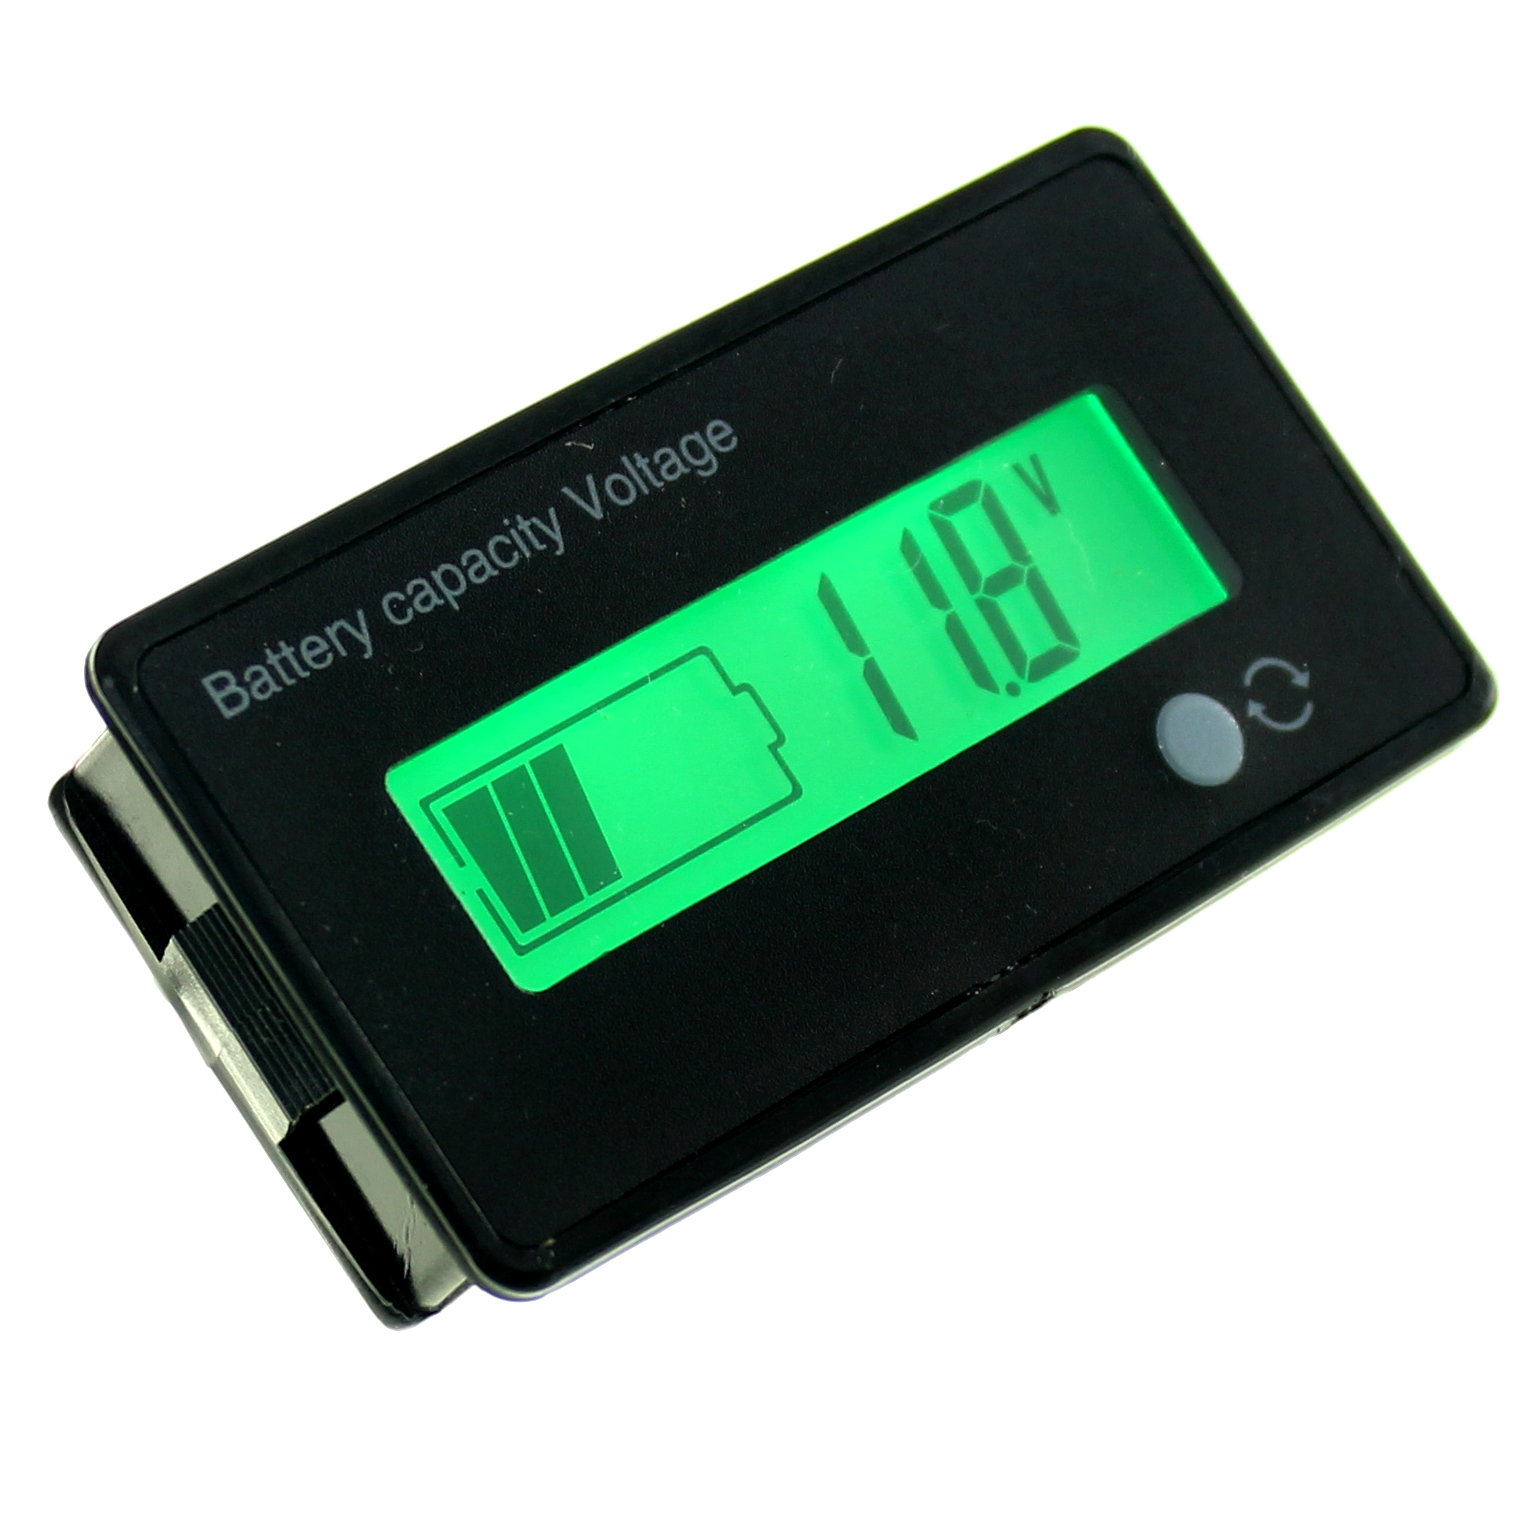 Battery Testers Component Shop Lcd 60v 100a Dc Rc Balance Voltage Watt Meter Power Analyzer Capacity Tester And Voltmeter For 12 48v Lead Acid 3 15s Lipo Batteries